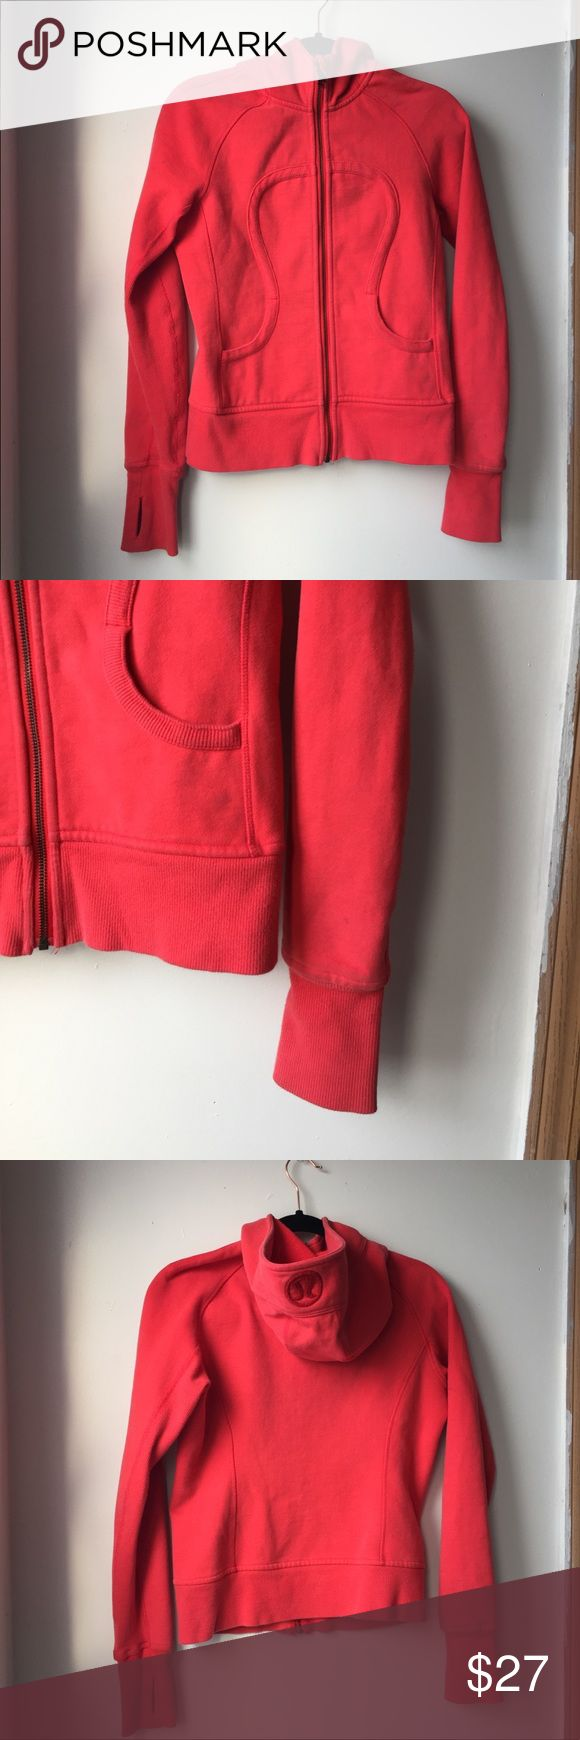 Lululemon red zip up hoodie xs Pre-loved Normal everyday wear, no huge markings but not in new condition. Still has a lot of life! XS  Zip up hoodie   No trades or tryon lululemon athletica Sweaters